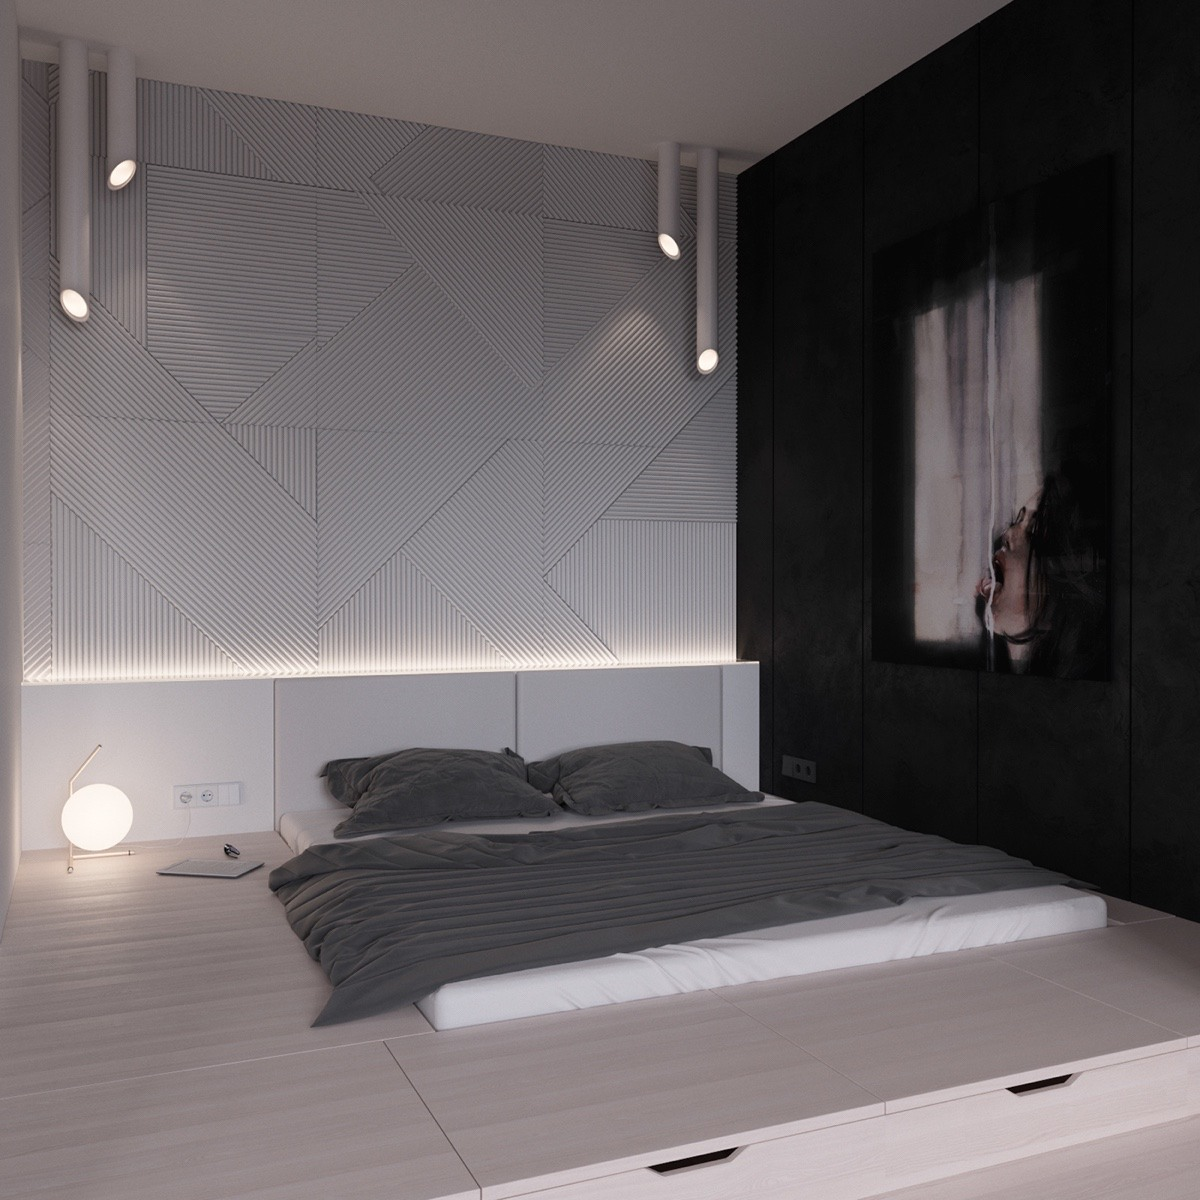 Simple Bedroom Interior Design 40 low height & floor bed designs that will make you sleepy